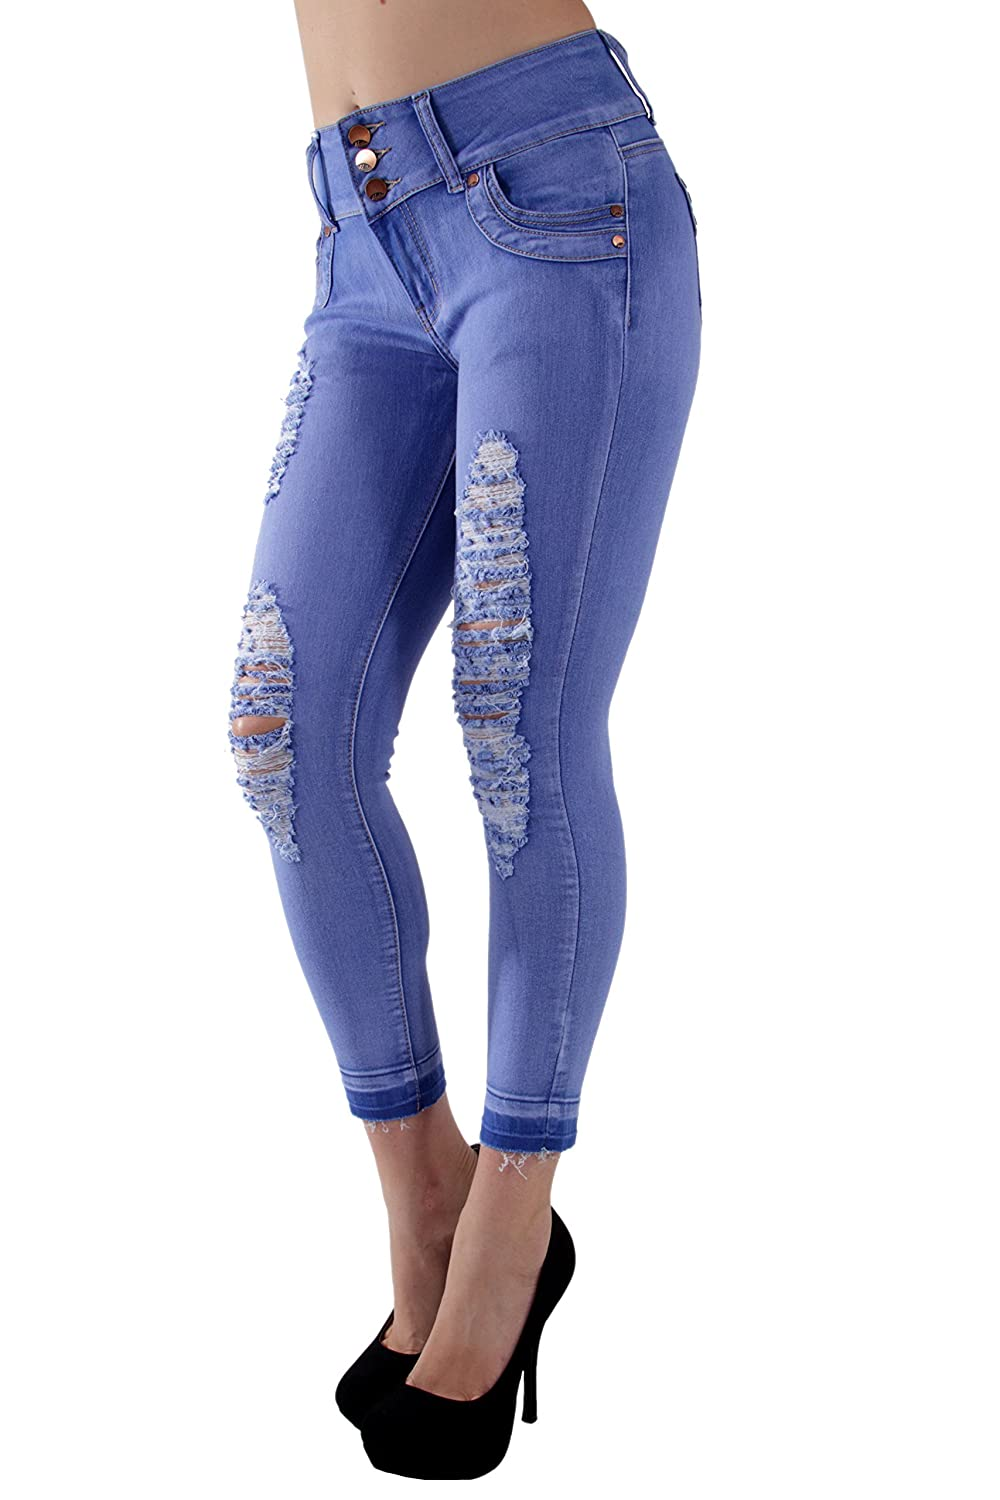 Fashion2Love 8Y055(S) - Butt Lift, Ripped, Distressed, Unfinished Hem, Ankle Jeans